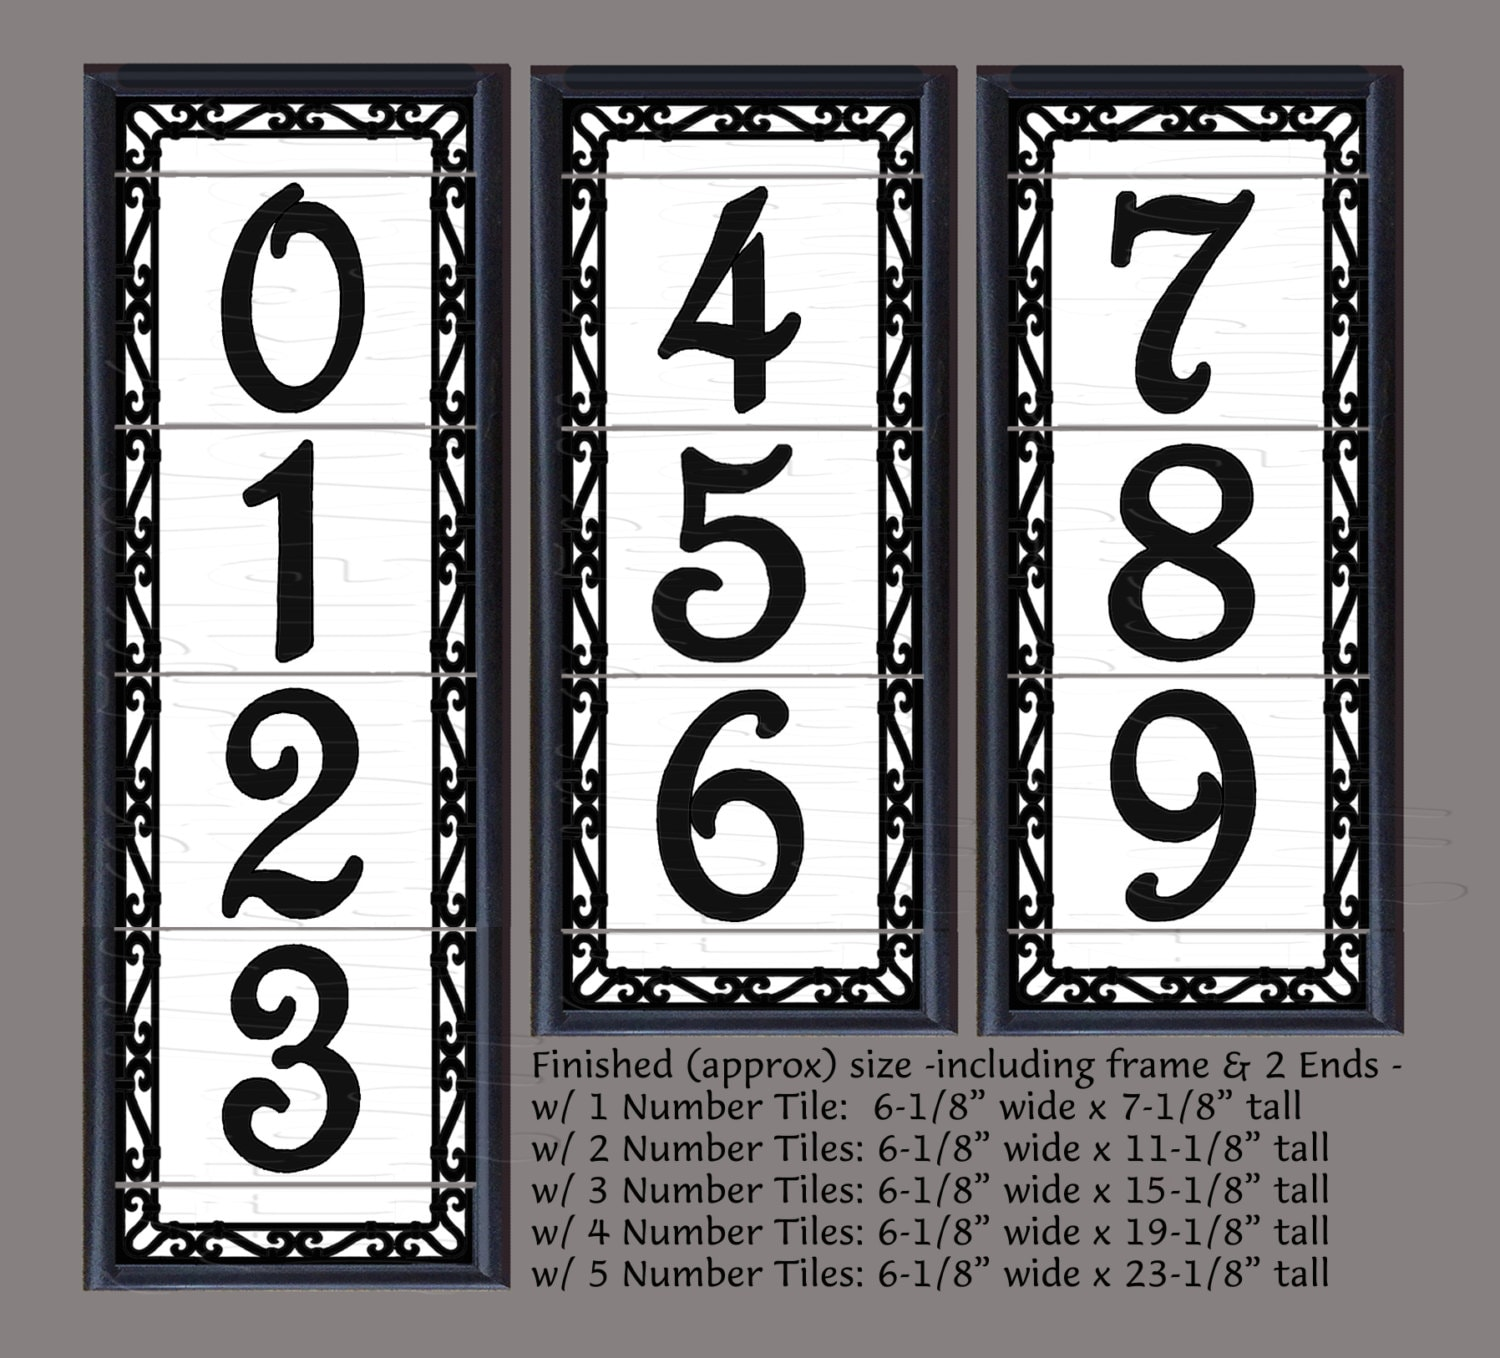 Framed decorative tile house numbers framed decorative zoom dailygadgetfo Images